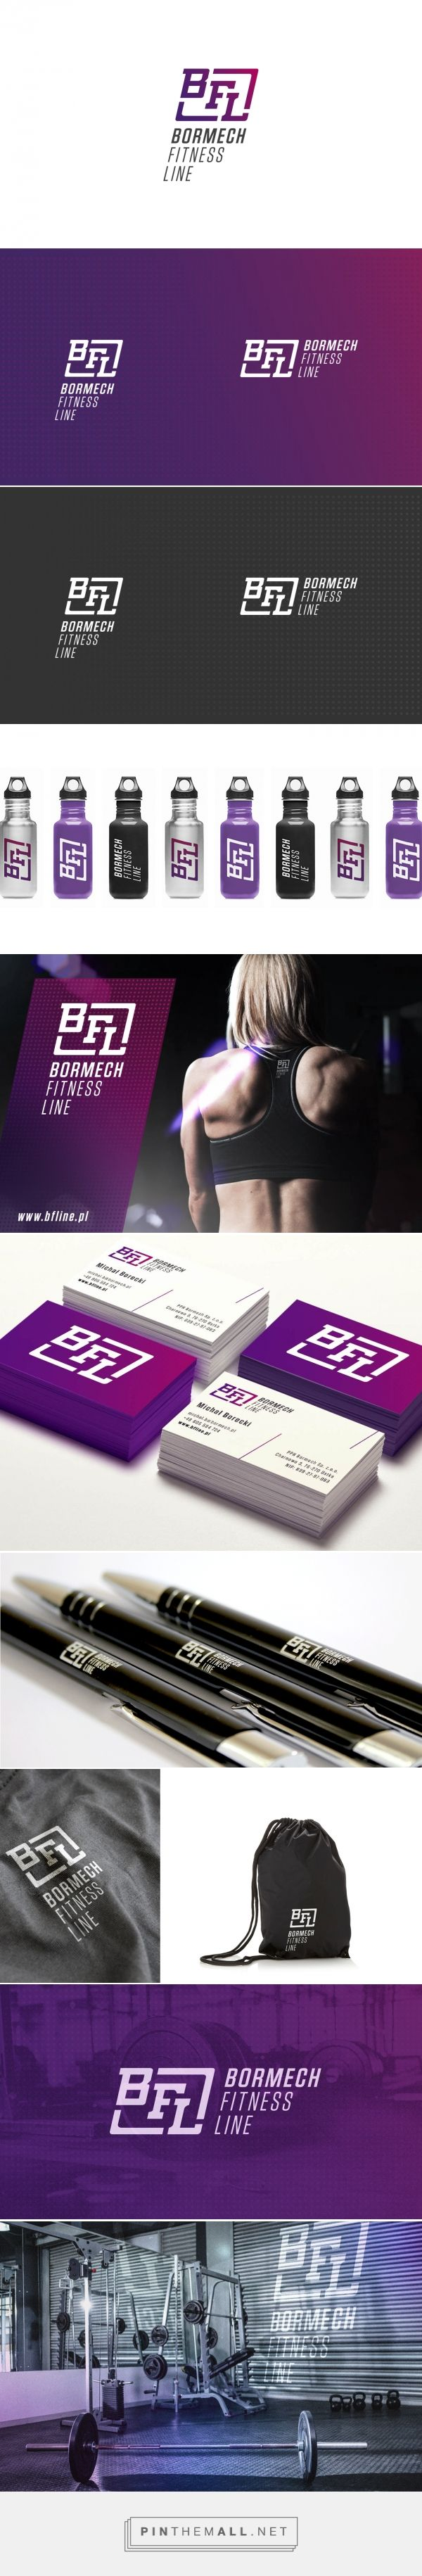 Bormech Fitness Line :: Corporate identity and branding - created via https://pinthemall.net